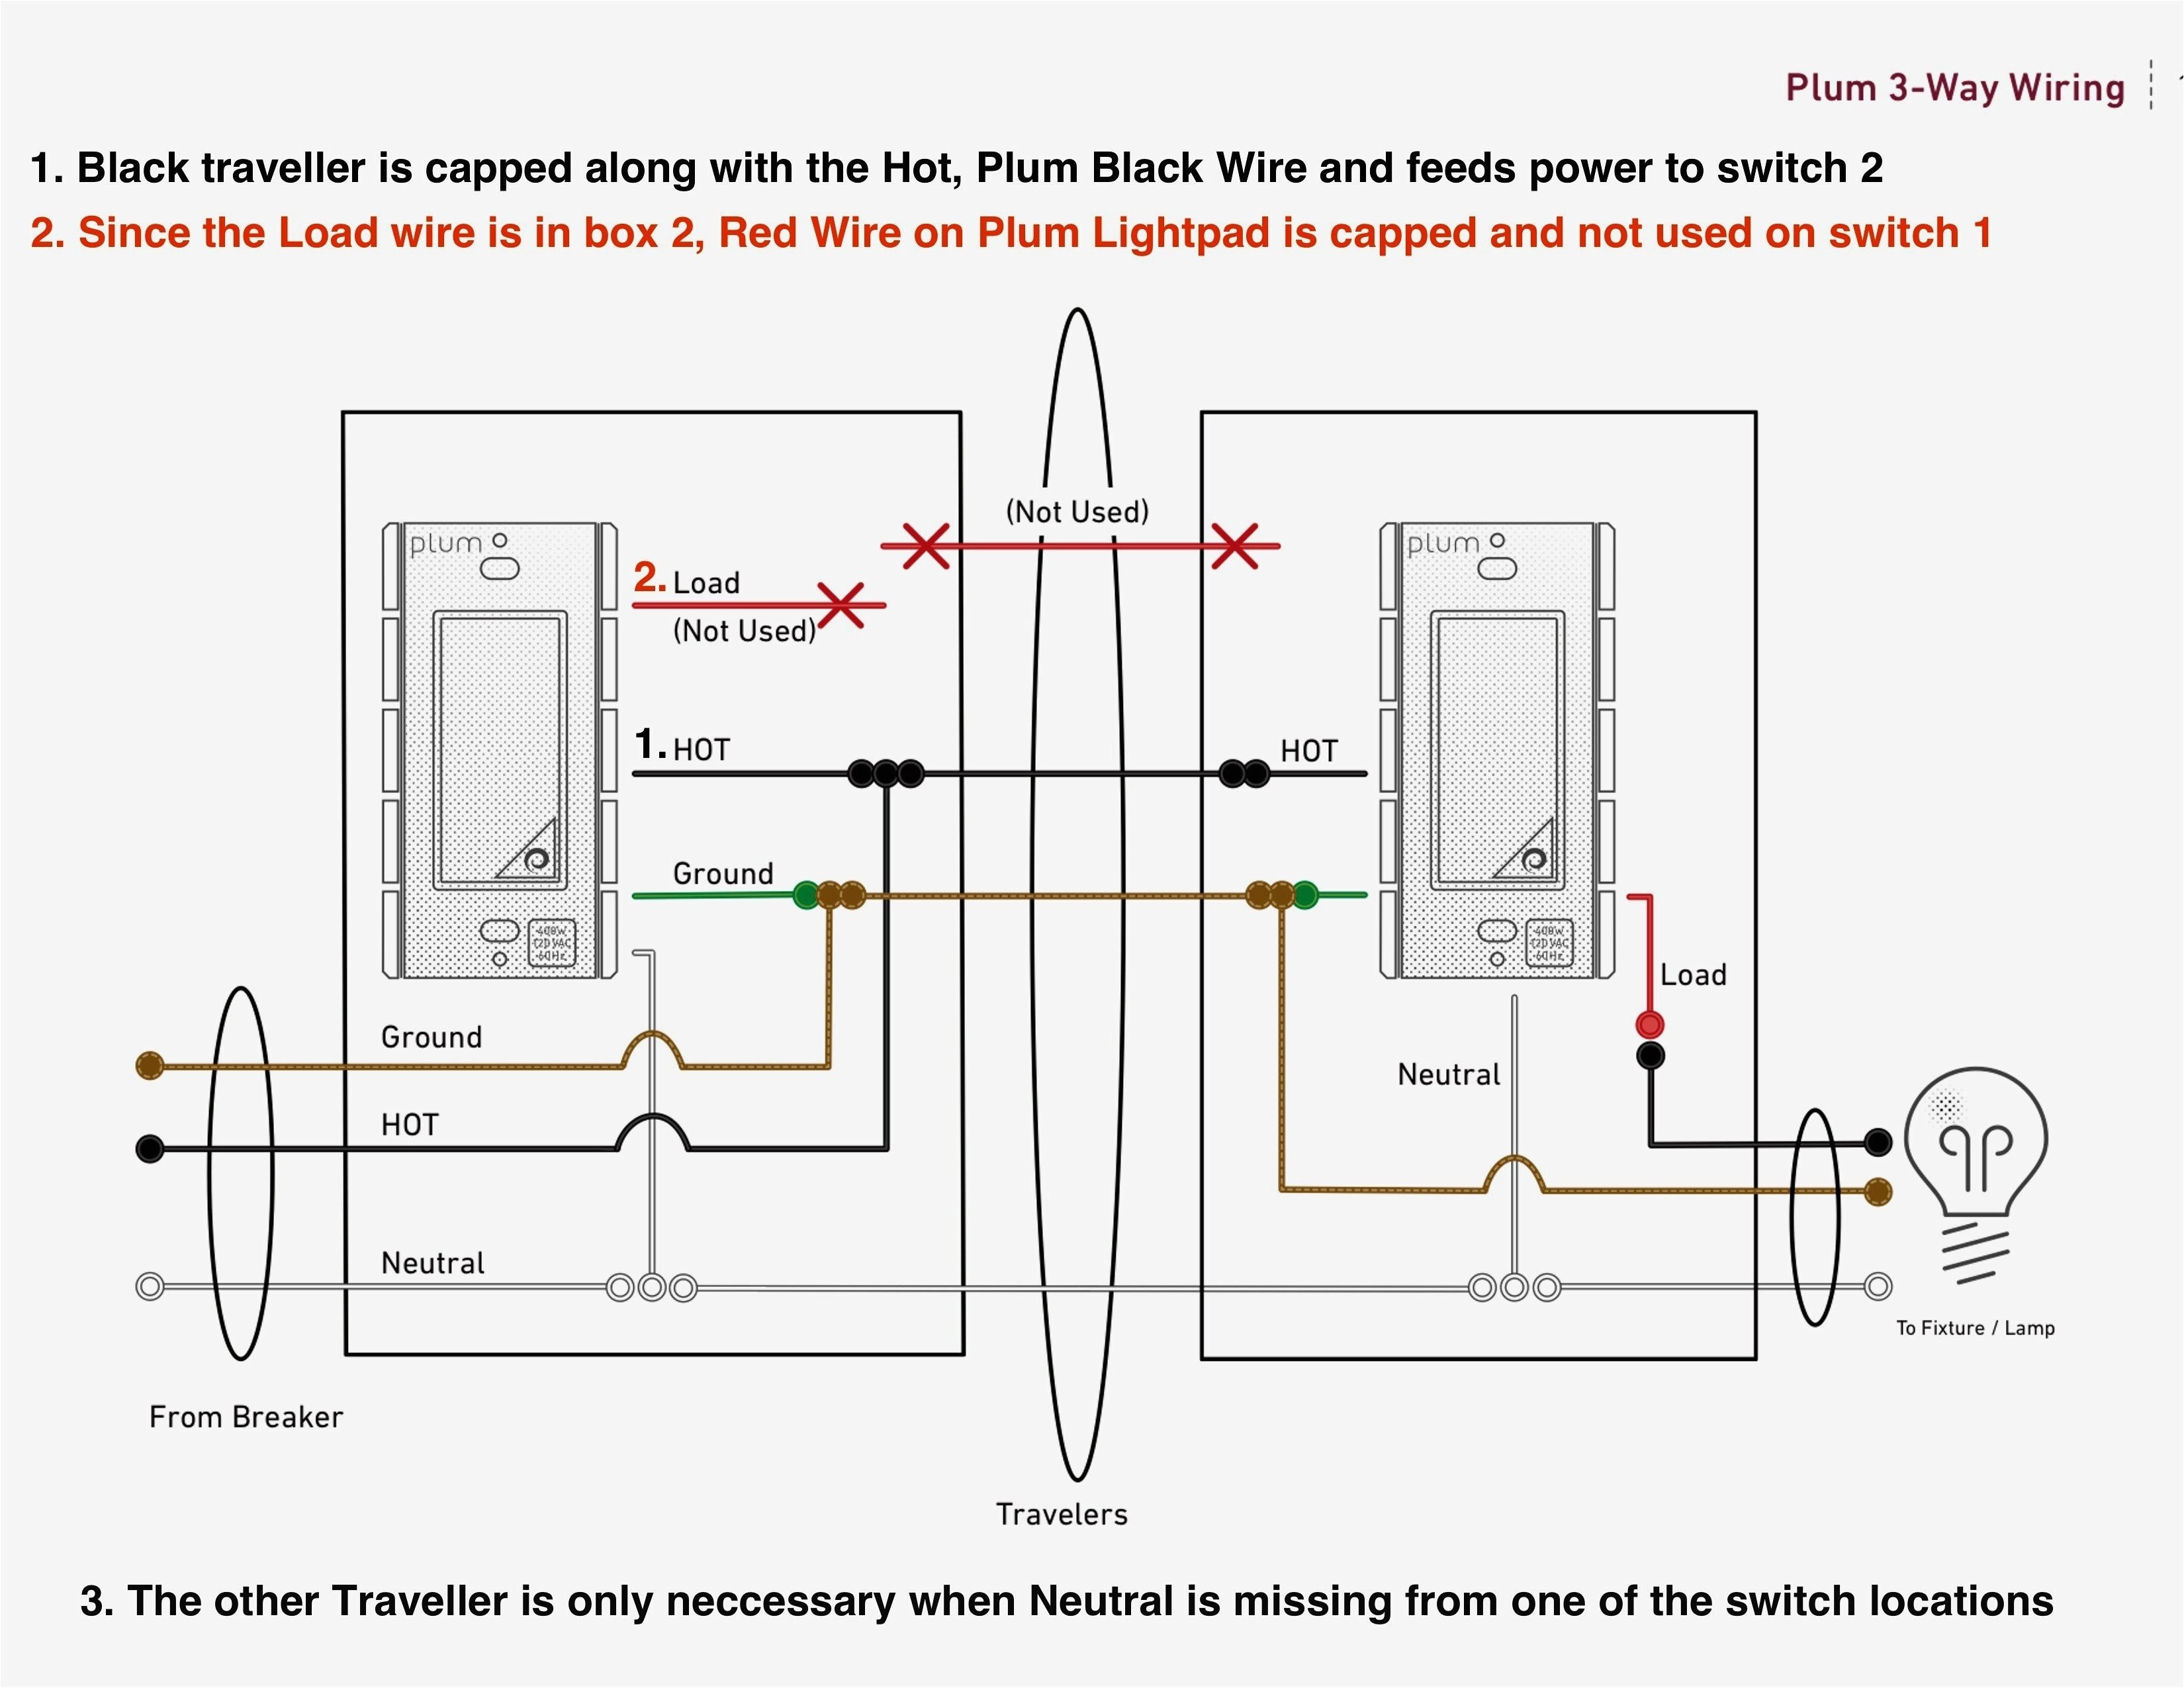 wiring diagram for two way dimmer switch free download wiring wiring diagram for dimmer switch single pole free download